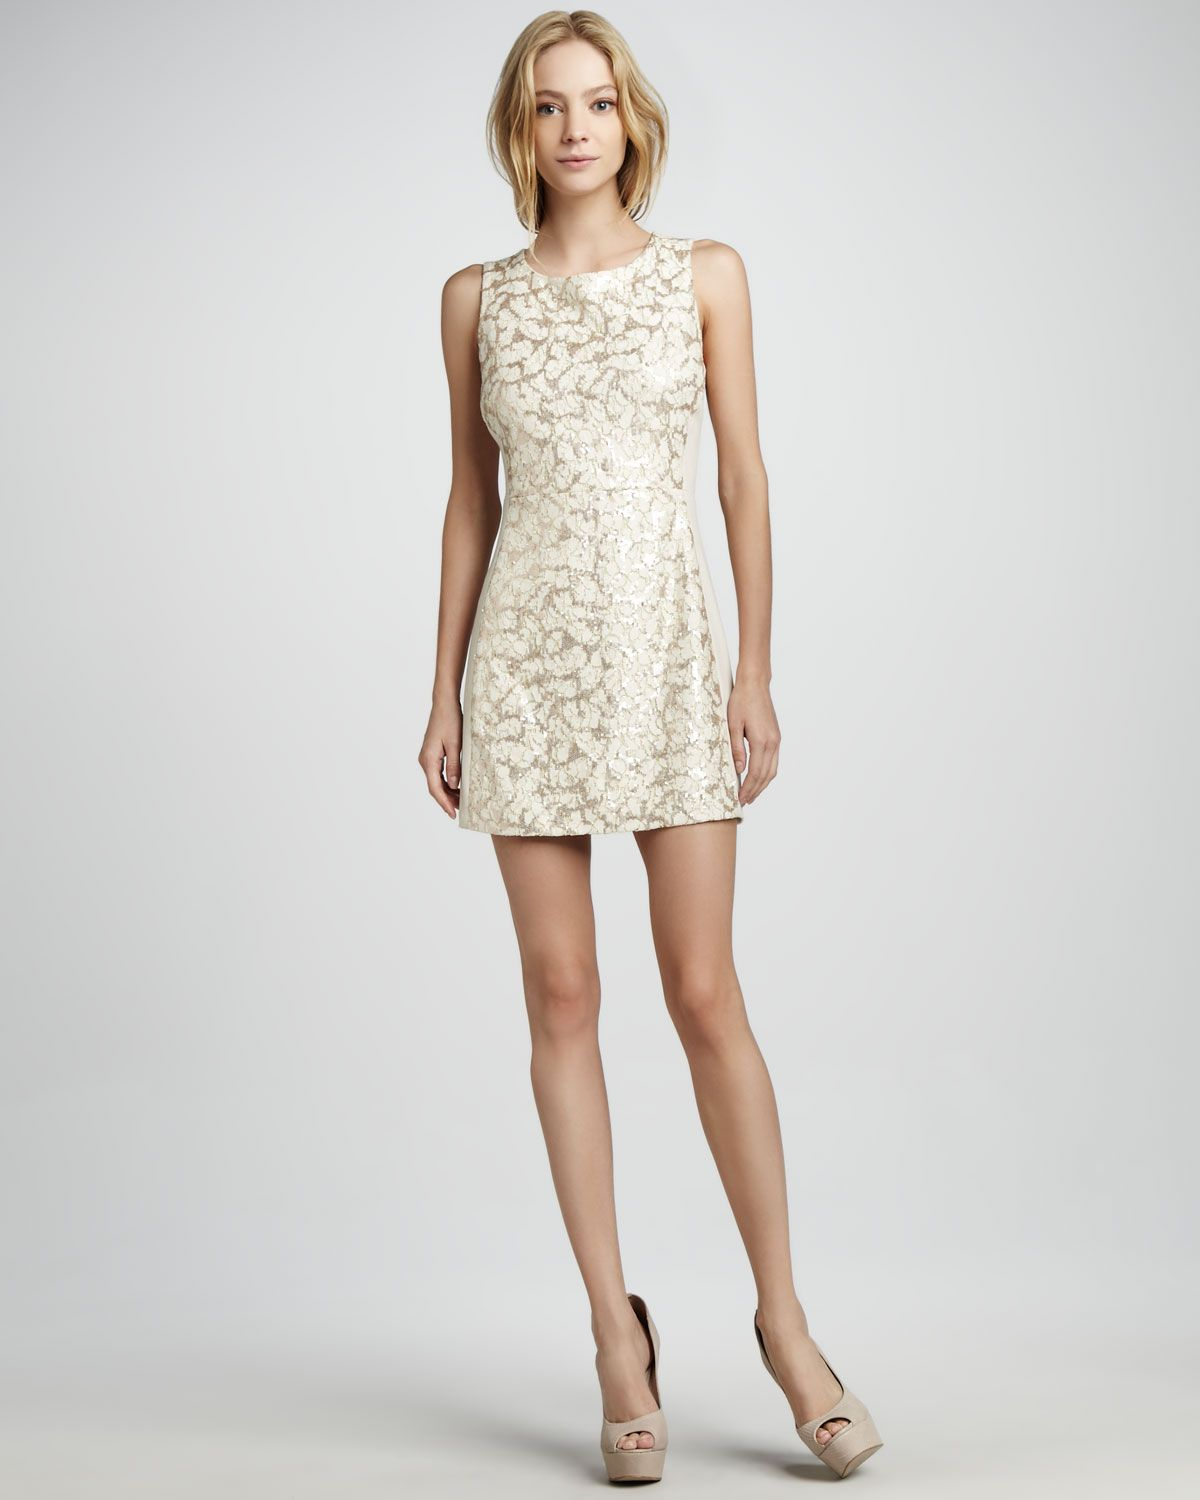 http://ncrni.com/ali-ro-sleeveless-sequinlace-dress-p-10079.html